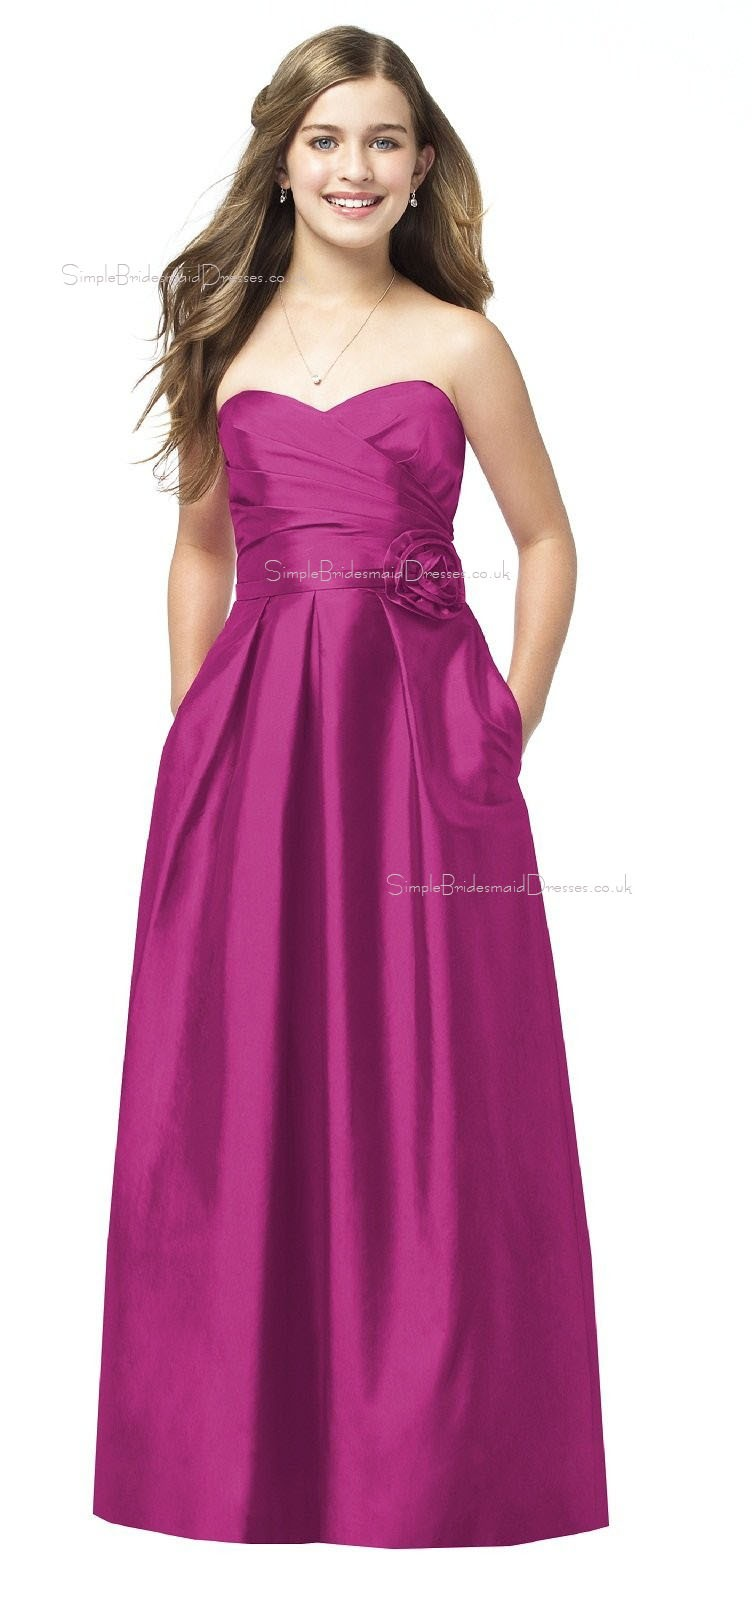 Sweetheart Floor-length A-line Strapless Satin Junior Bridesmaid ...